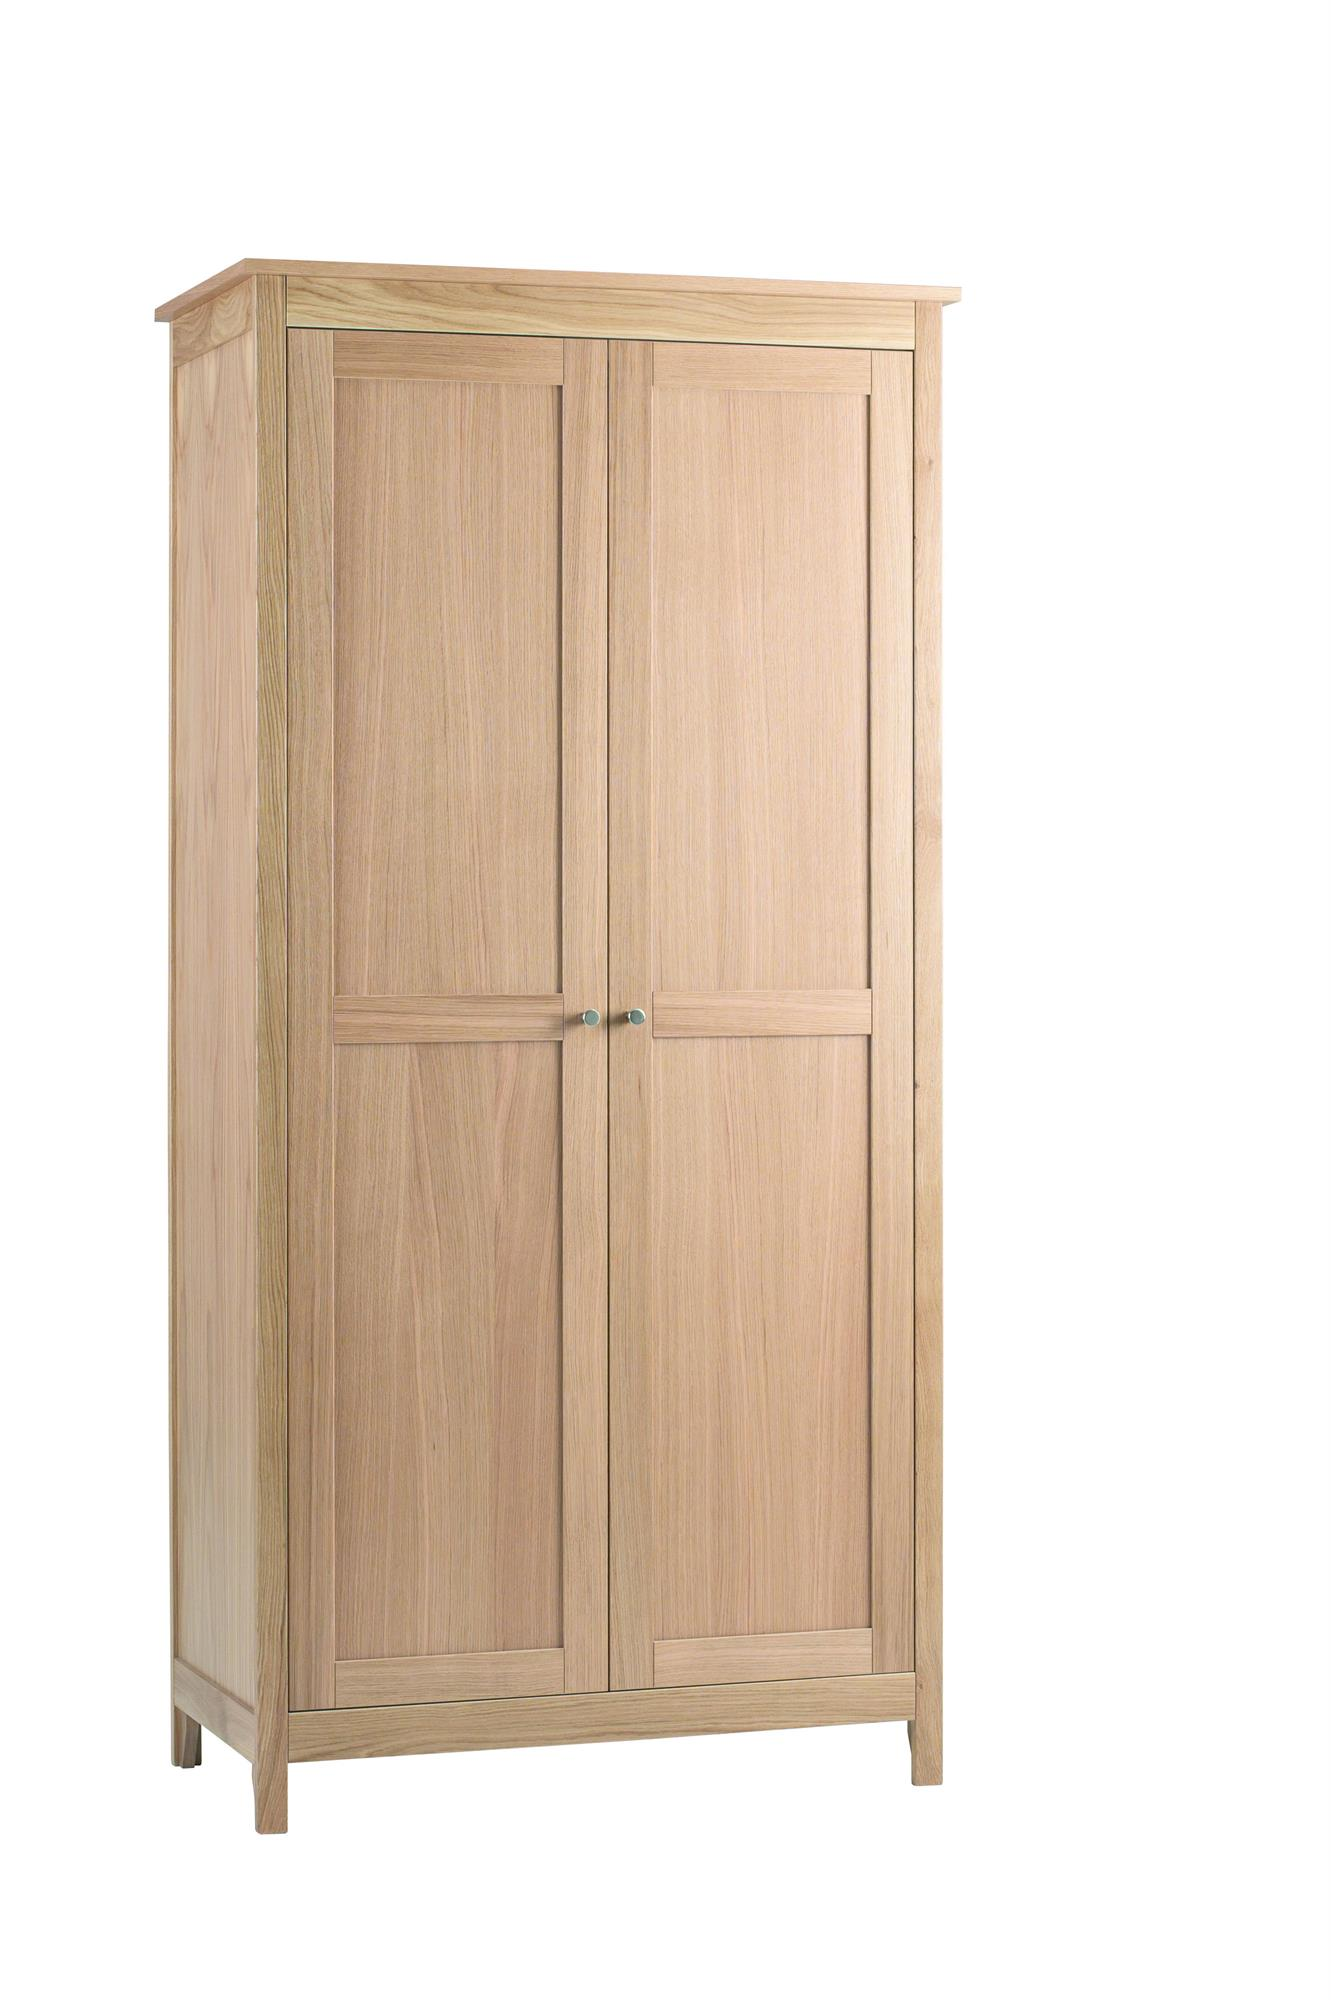 Nimbus - 2 Door Multi-Robe  - 1302